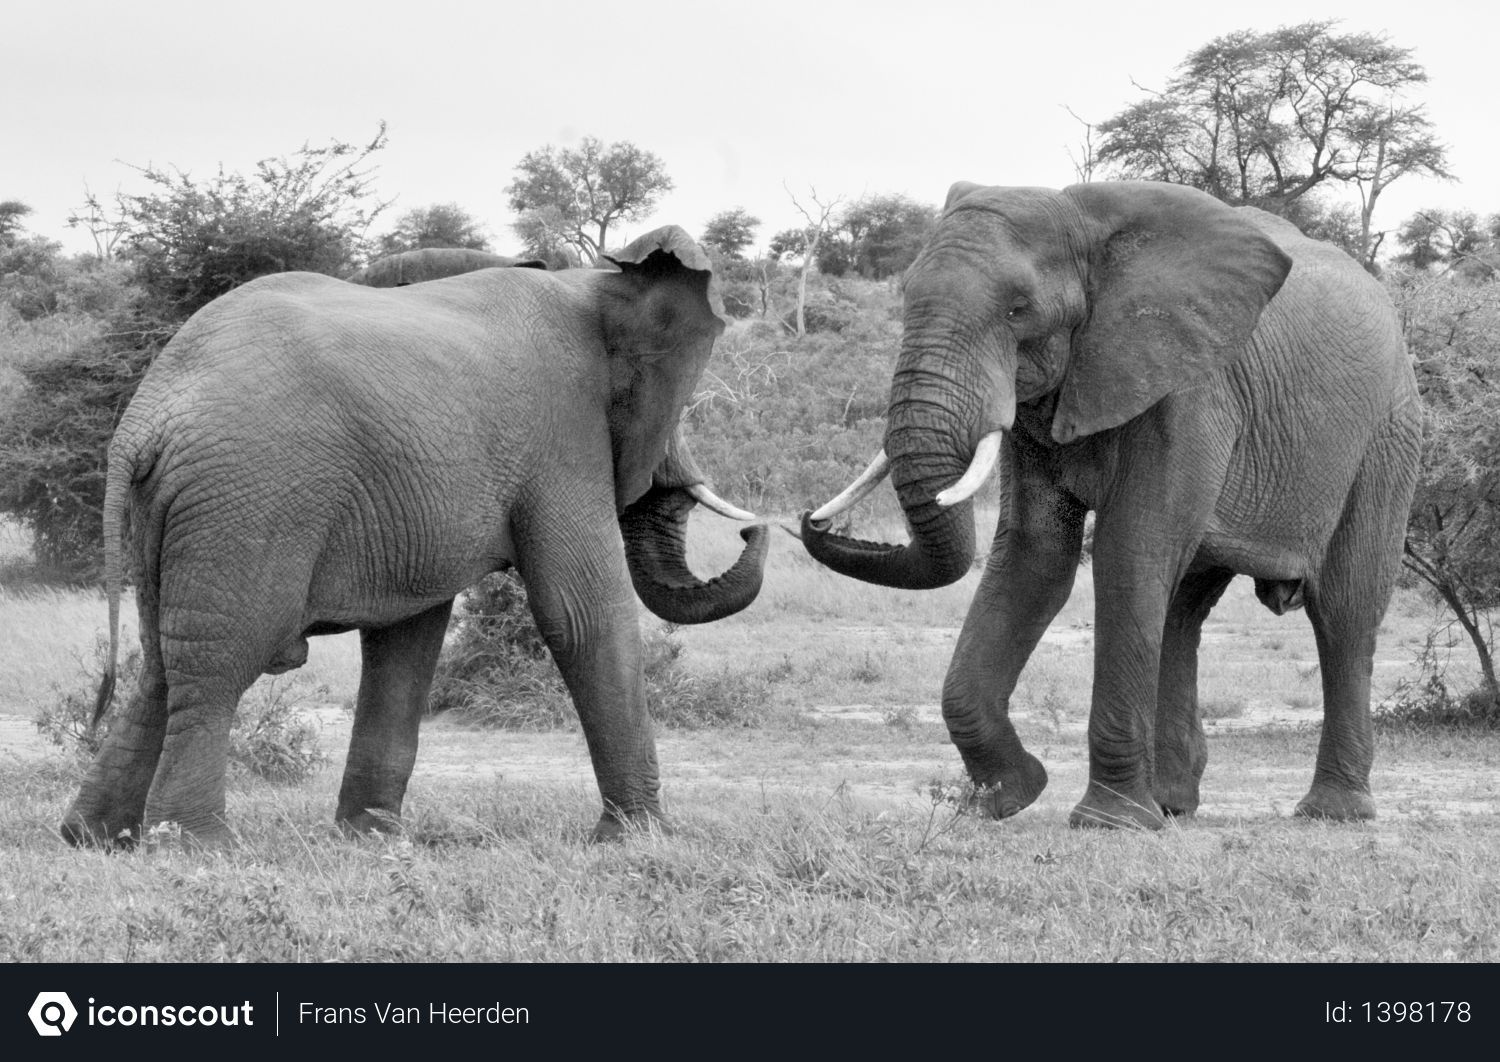 Free Elephant Photo download in PNG & JPG format | Elephants photos,  Elephant, Photo